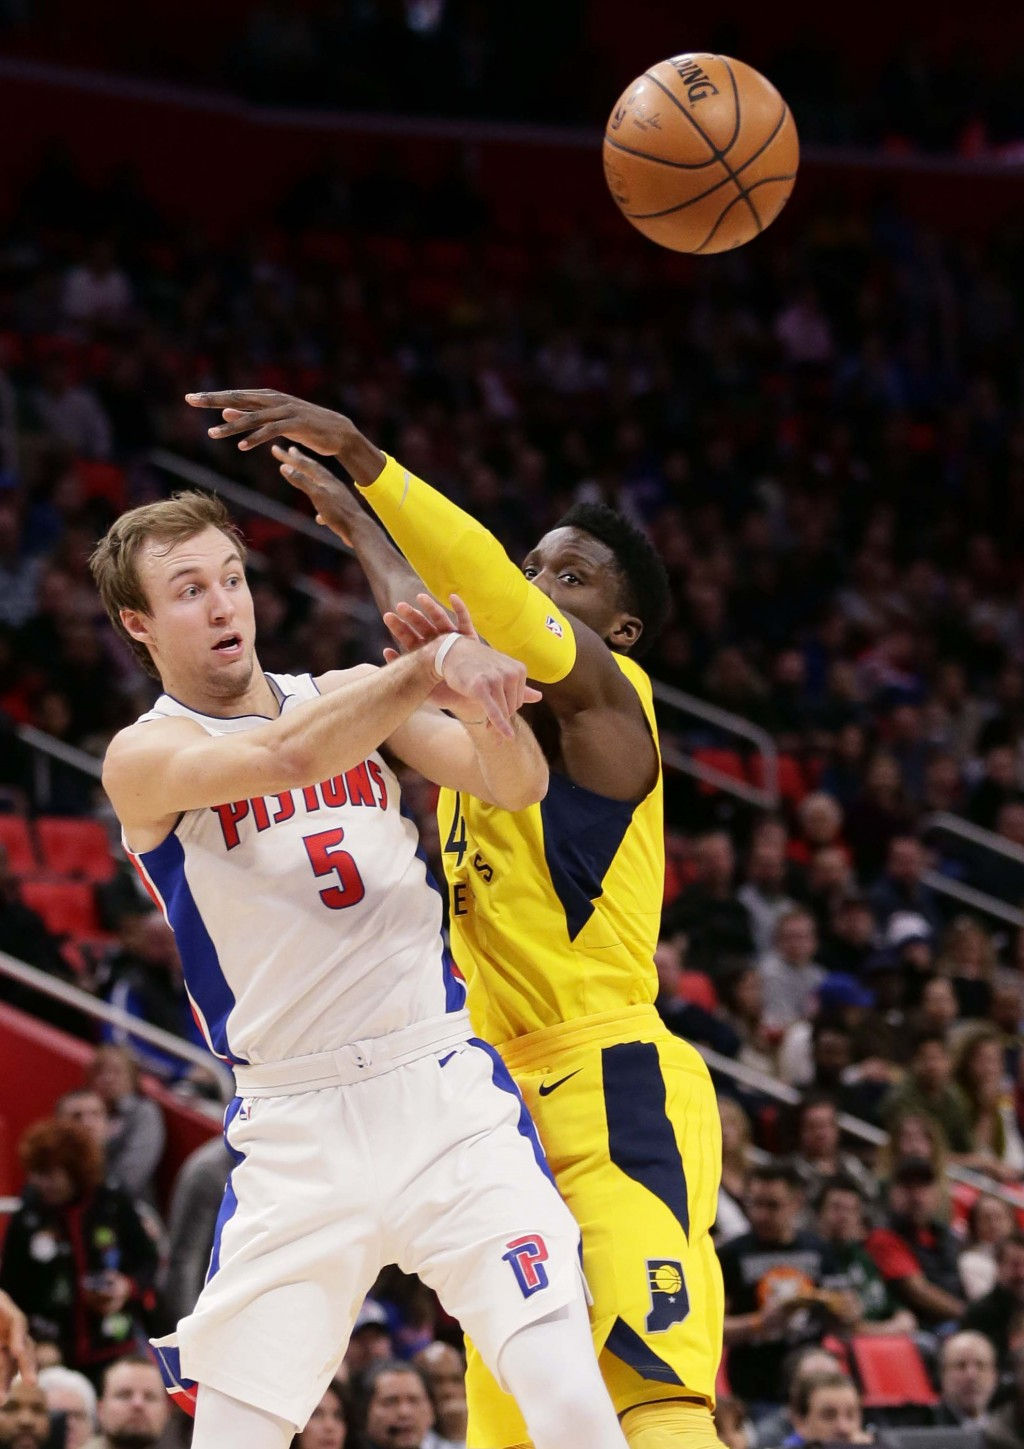 Detroit Pistons guard Luke Kennard (5) passes the ball against Indiana Pacers guard Victor Oladipo during the first half of an NBA basketball game, Tu...